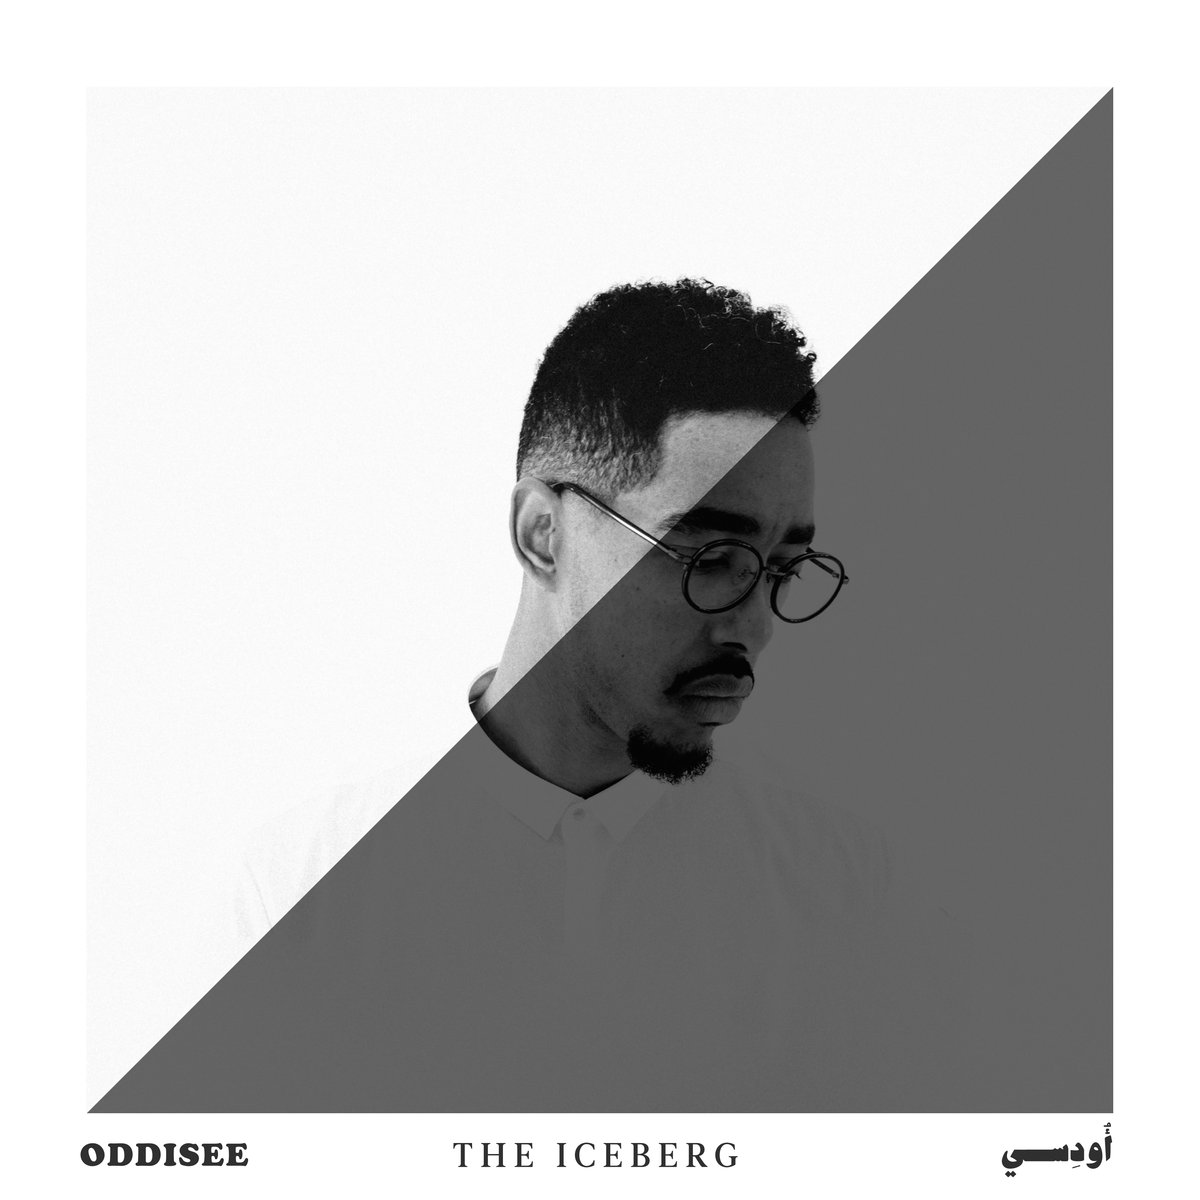 oddisee the iceberg